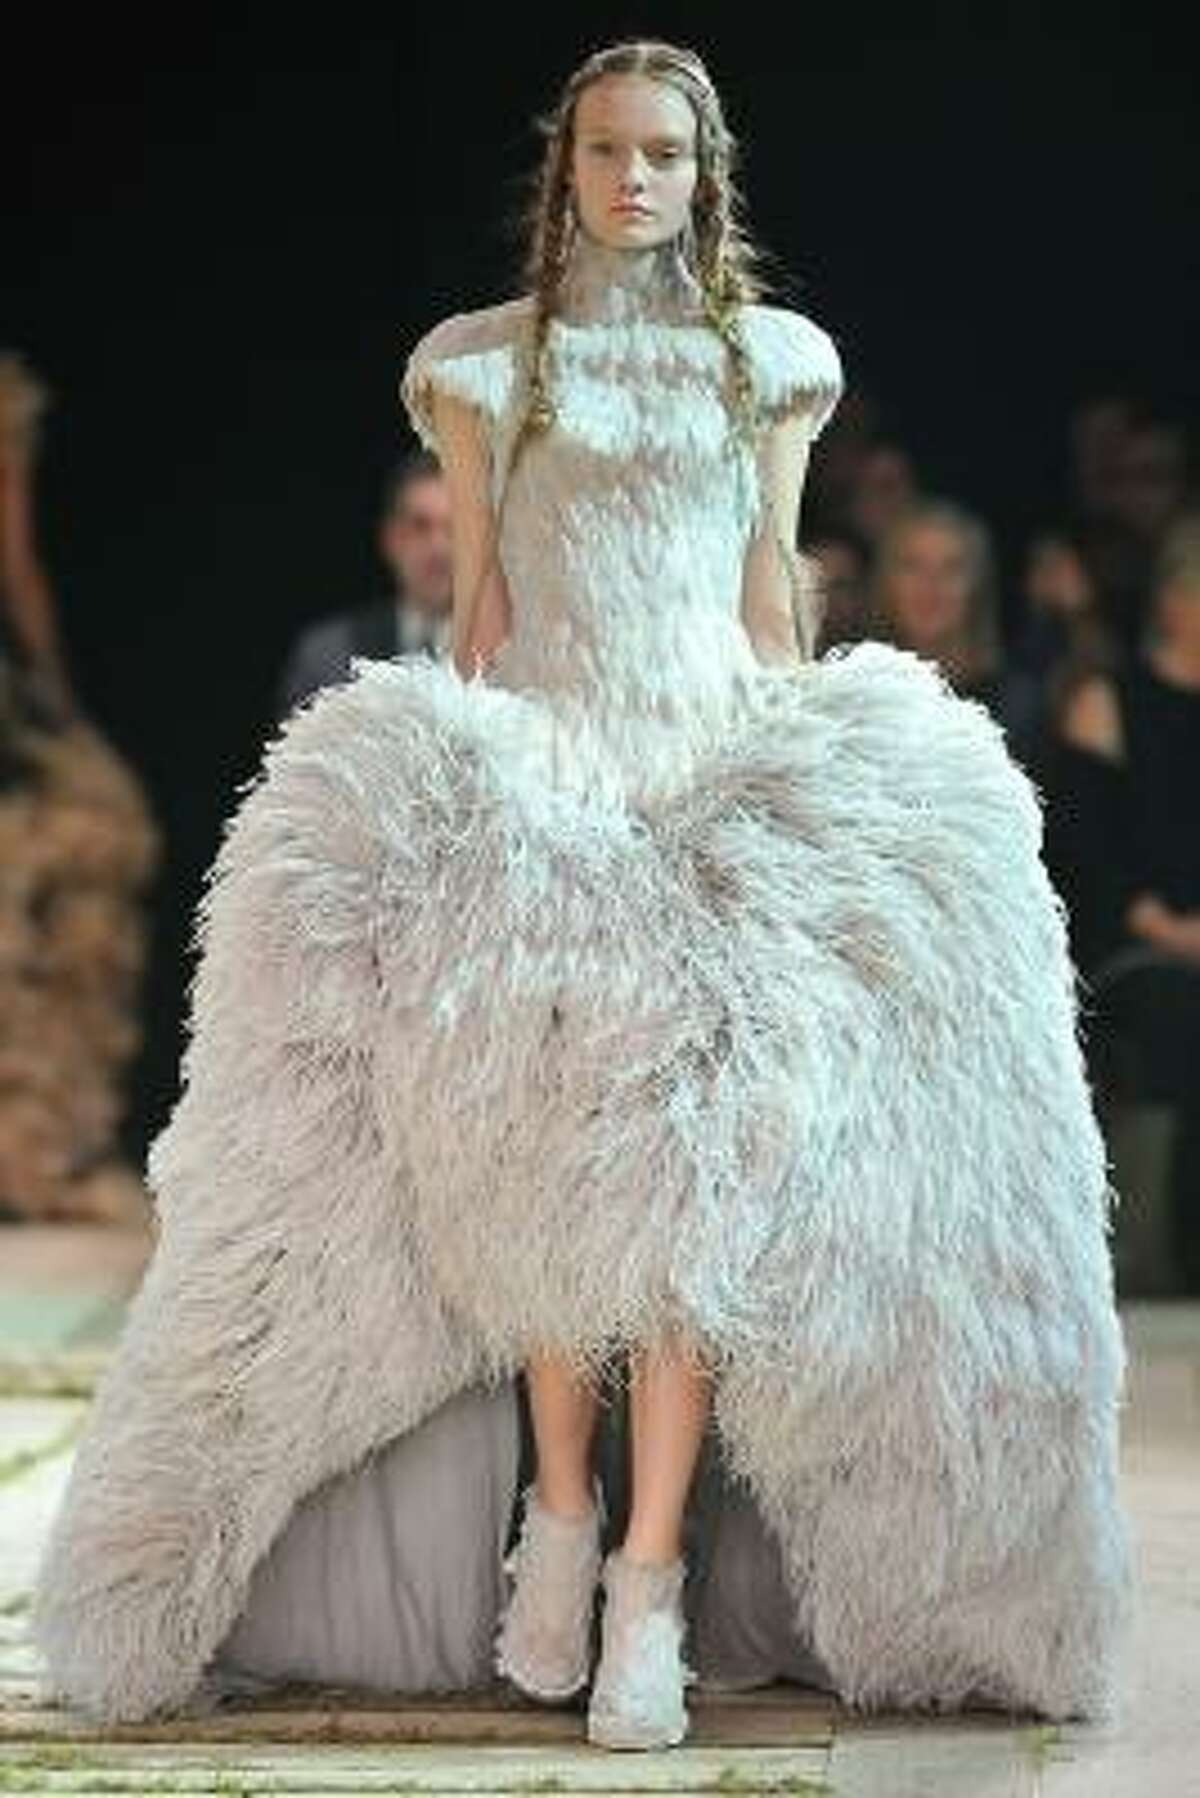 This angelic feathered gown is Alexander McQueen true style: majestic, dramatic and over-the-top.